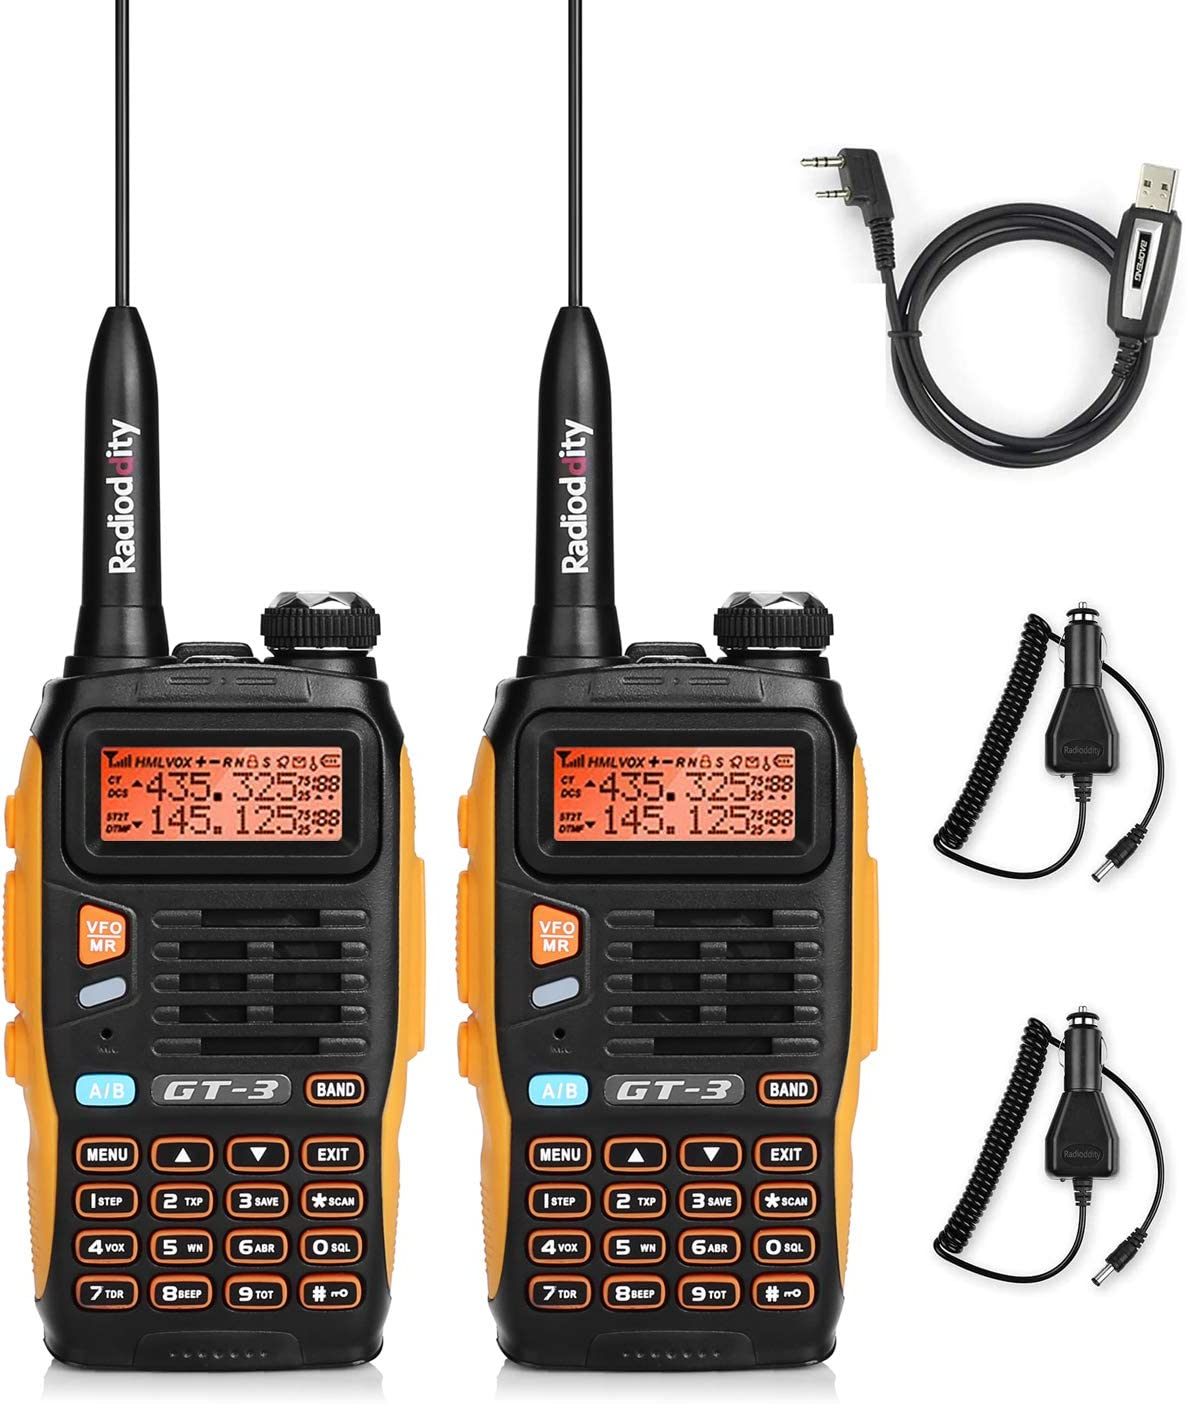 BAOFENG GT-3 Mark-II Dual Band Transceiver, FM Radio, 136-174 400-520 MHz, Chipsets Upgraded, ABS Frame and Programming Cable, 2 Pack